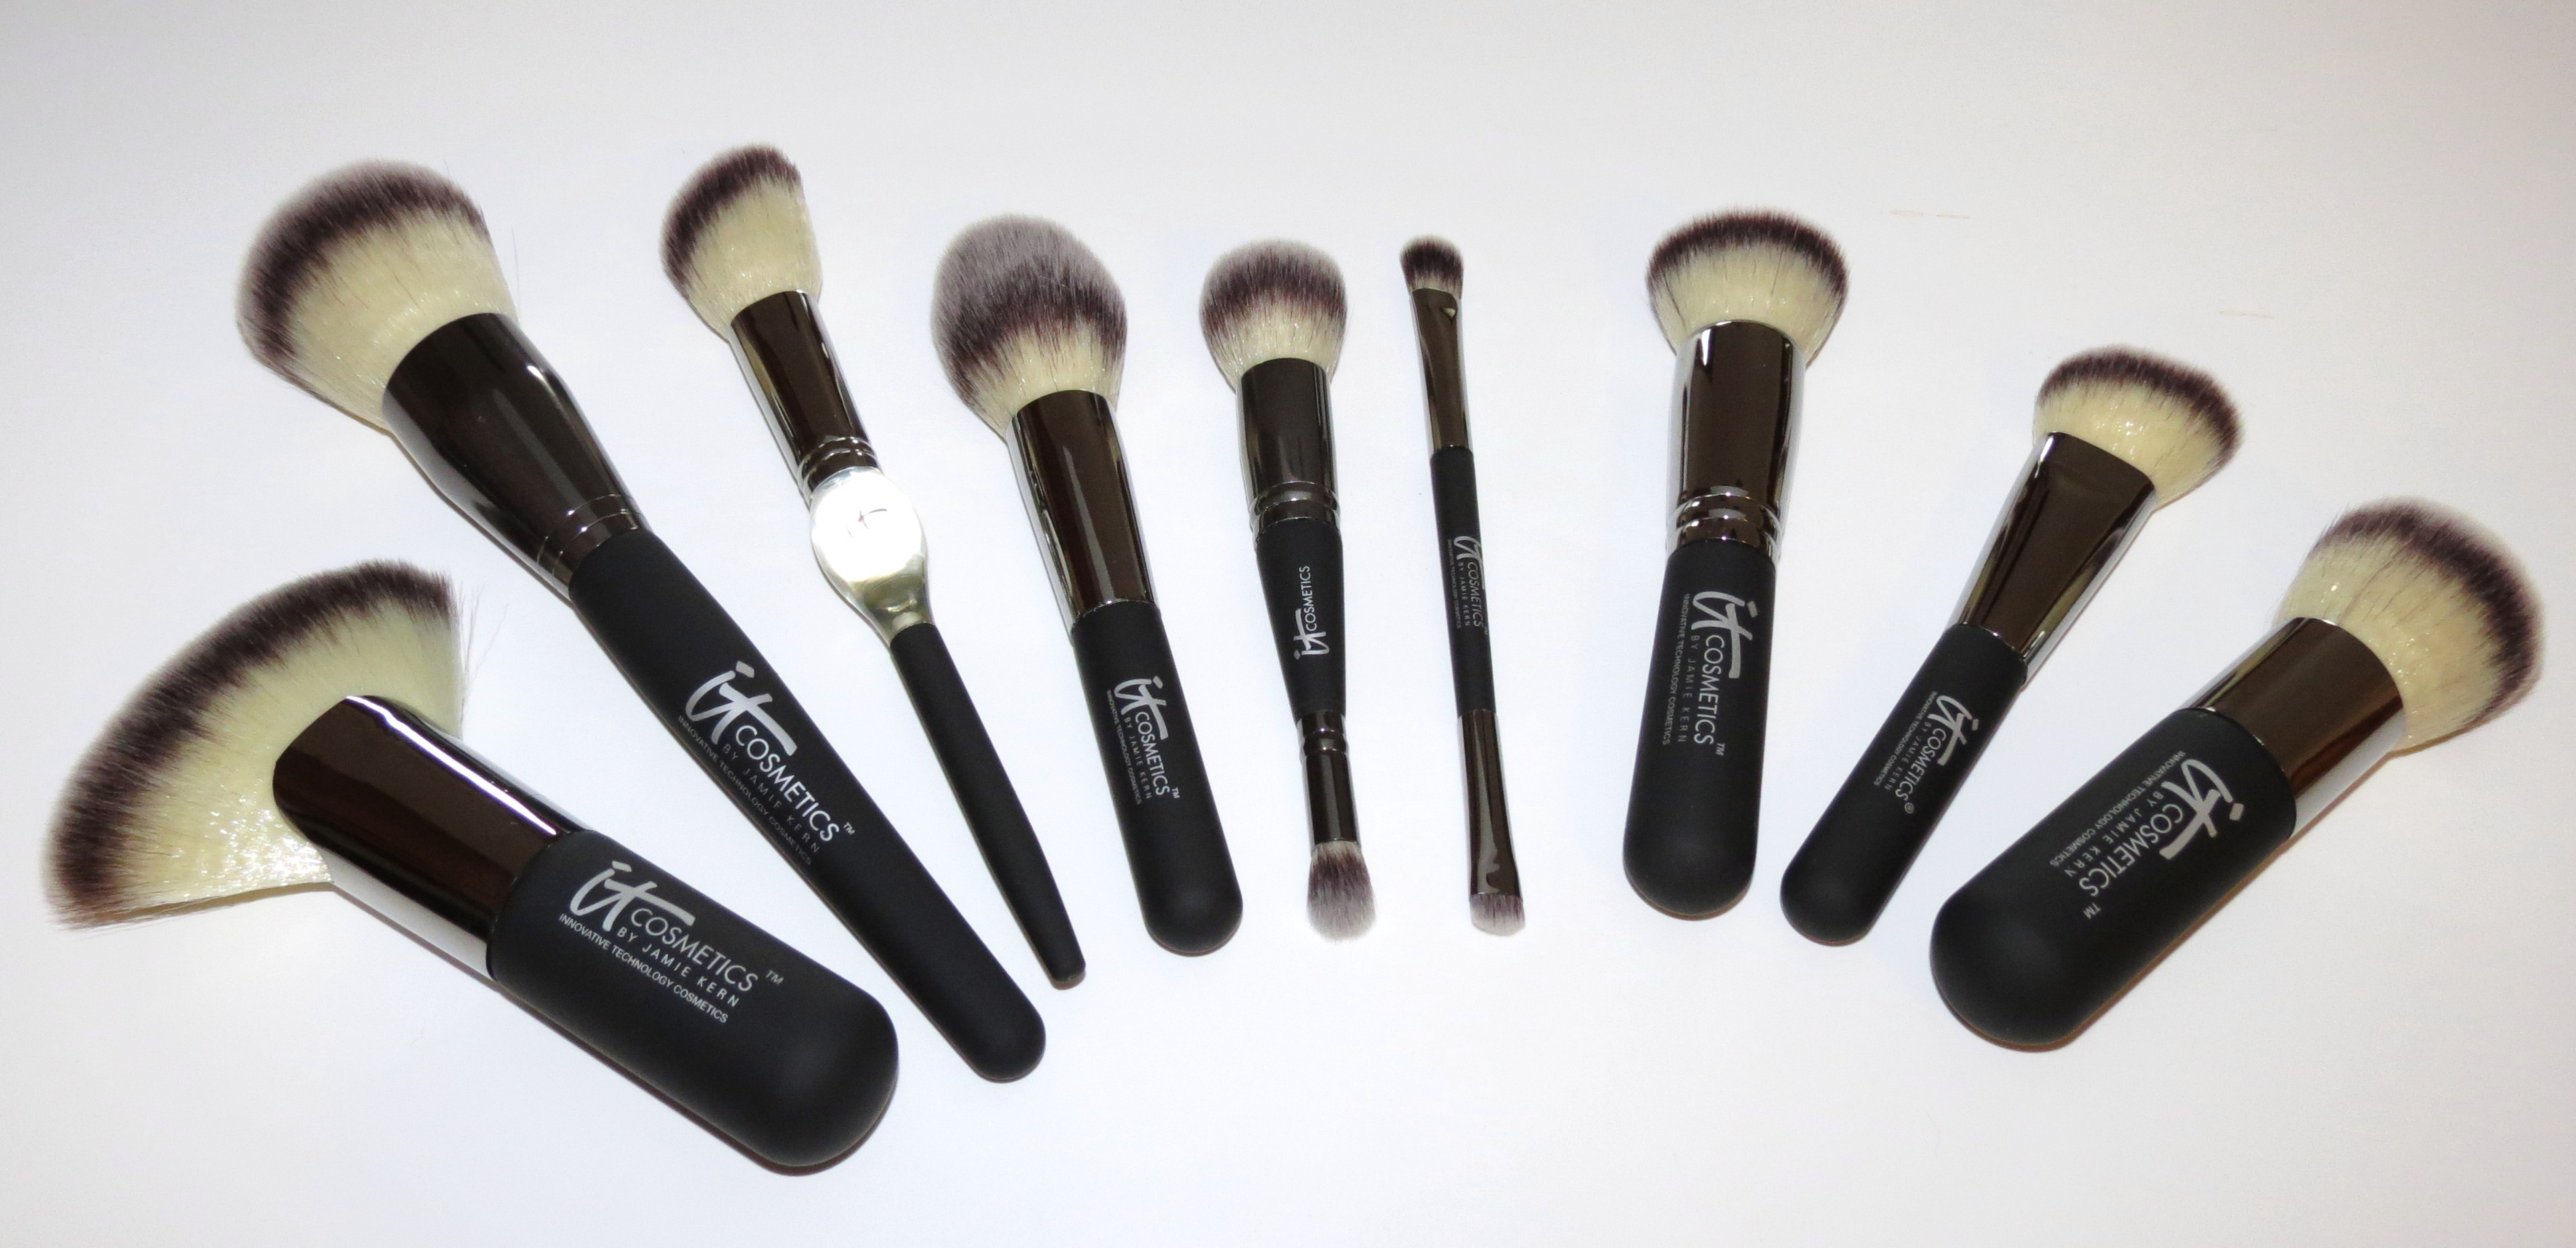 Heavenly Luxe Wand Ball Powder Brush #8 by IT Cosmetics #15